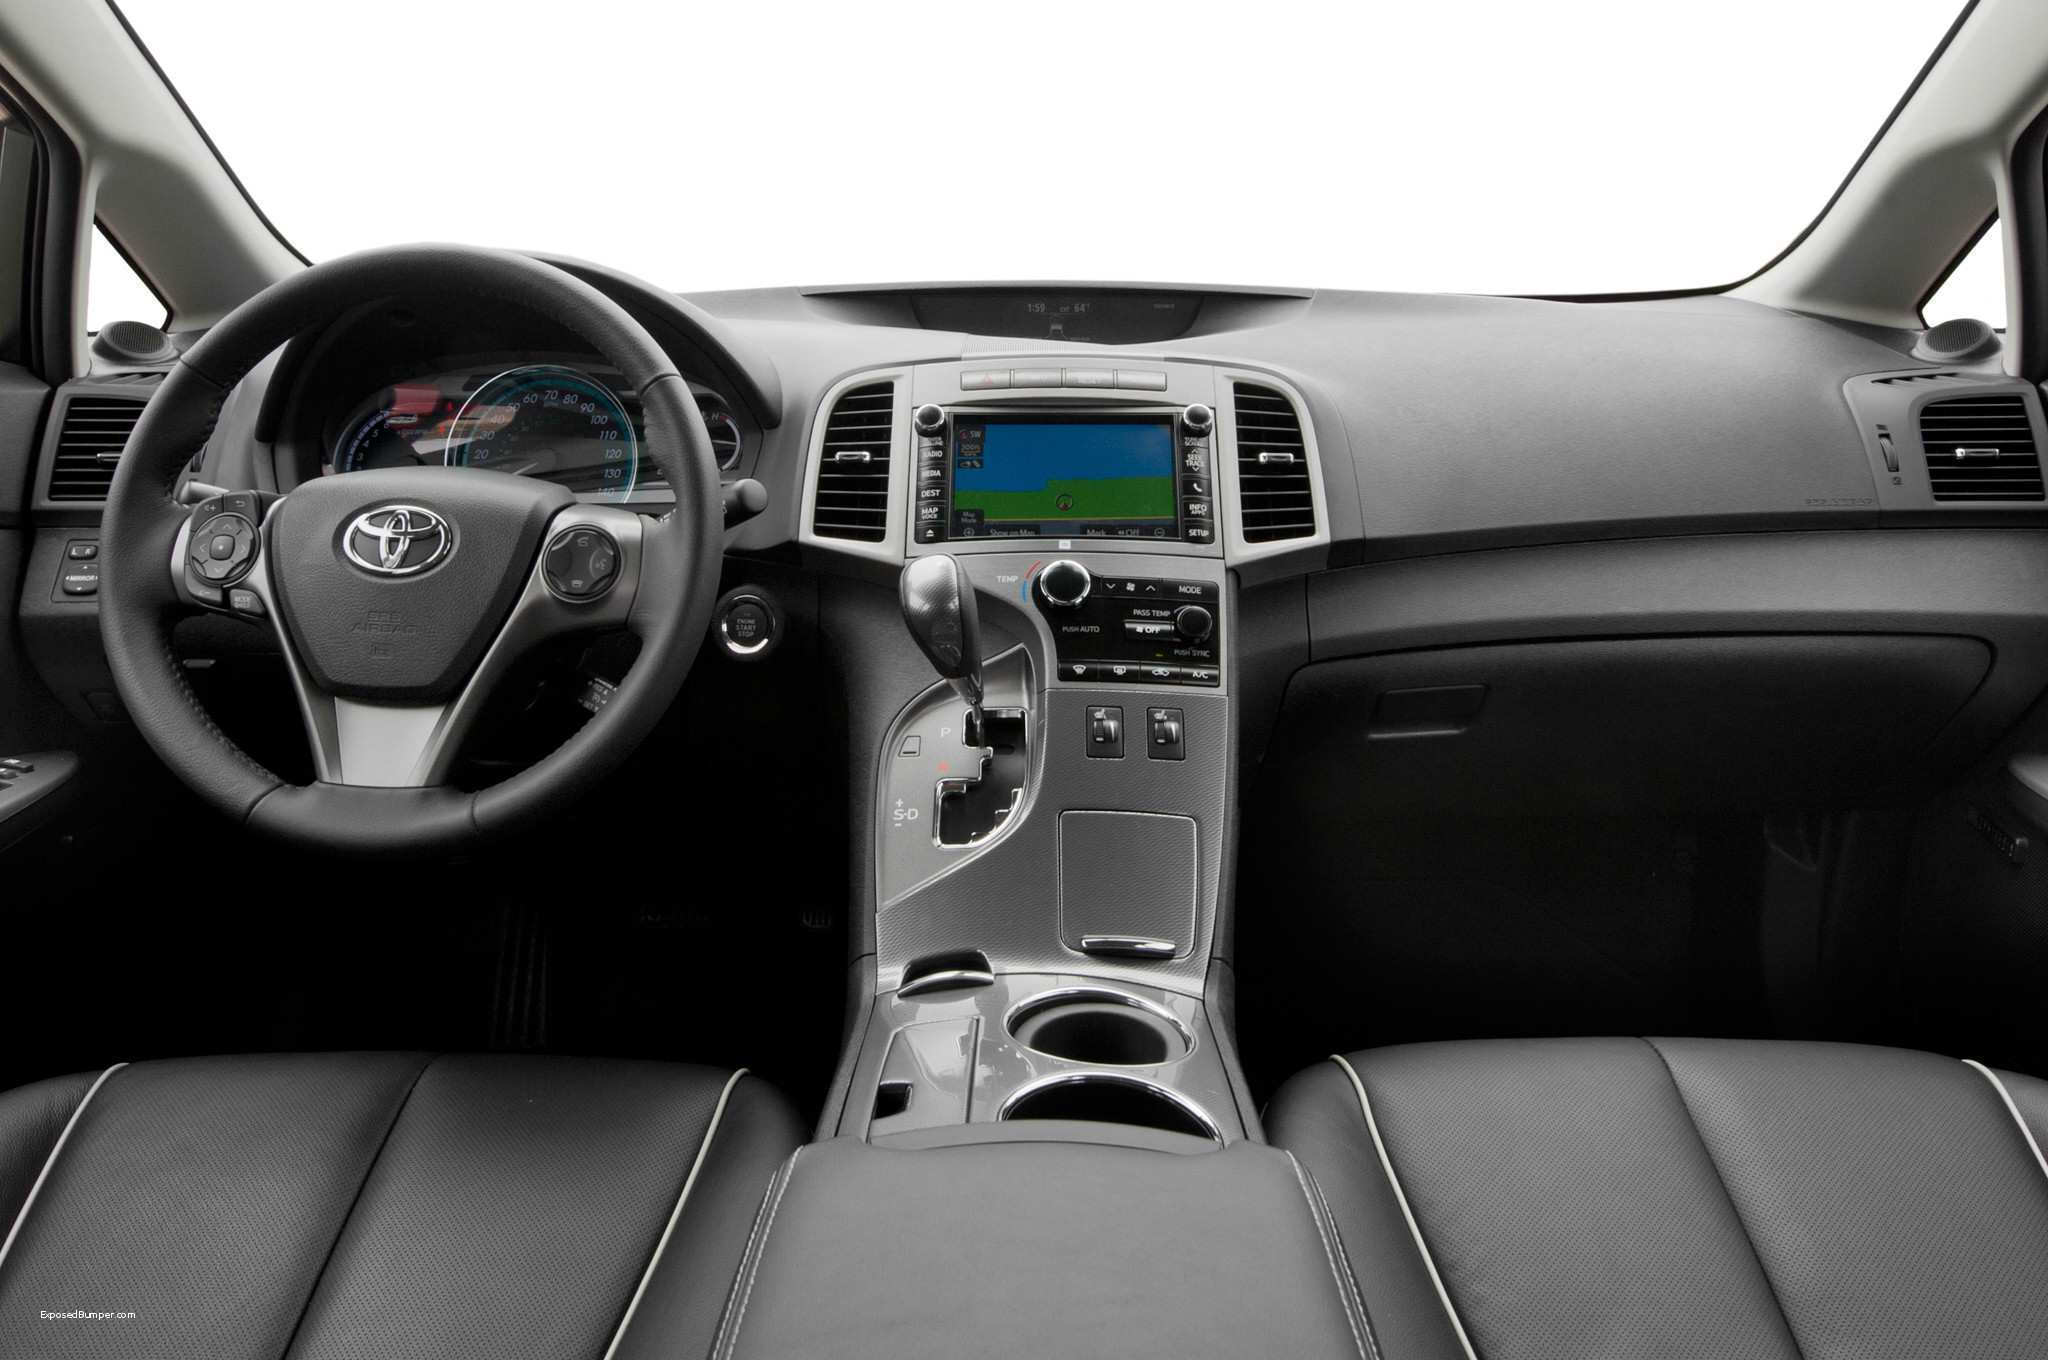 61 New Toyota Venza 2020 Redesign and Concept by Toyota Venza 2020